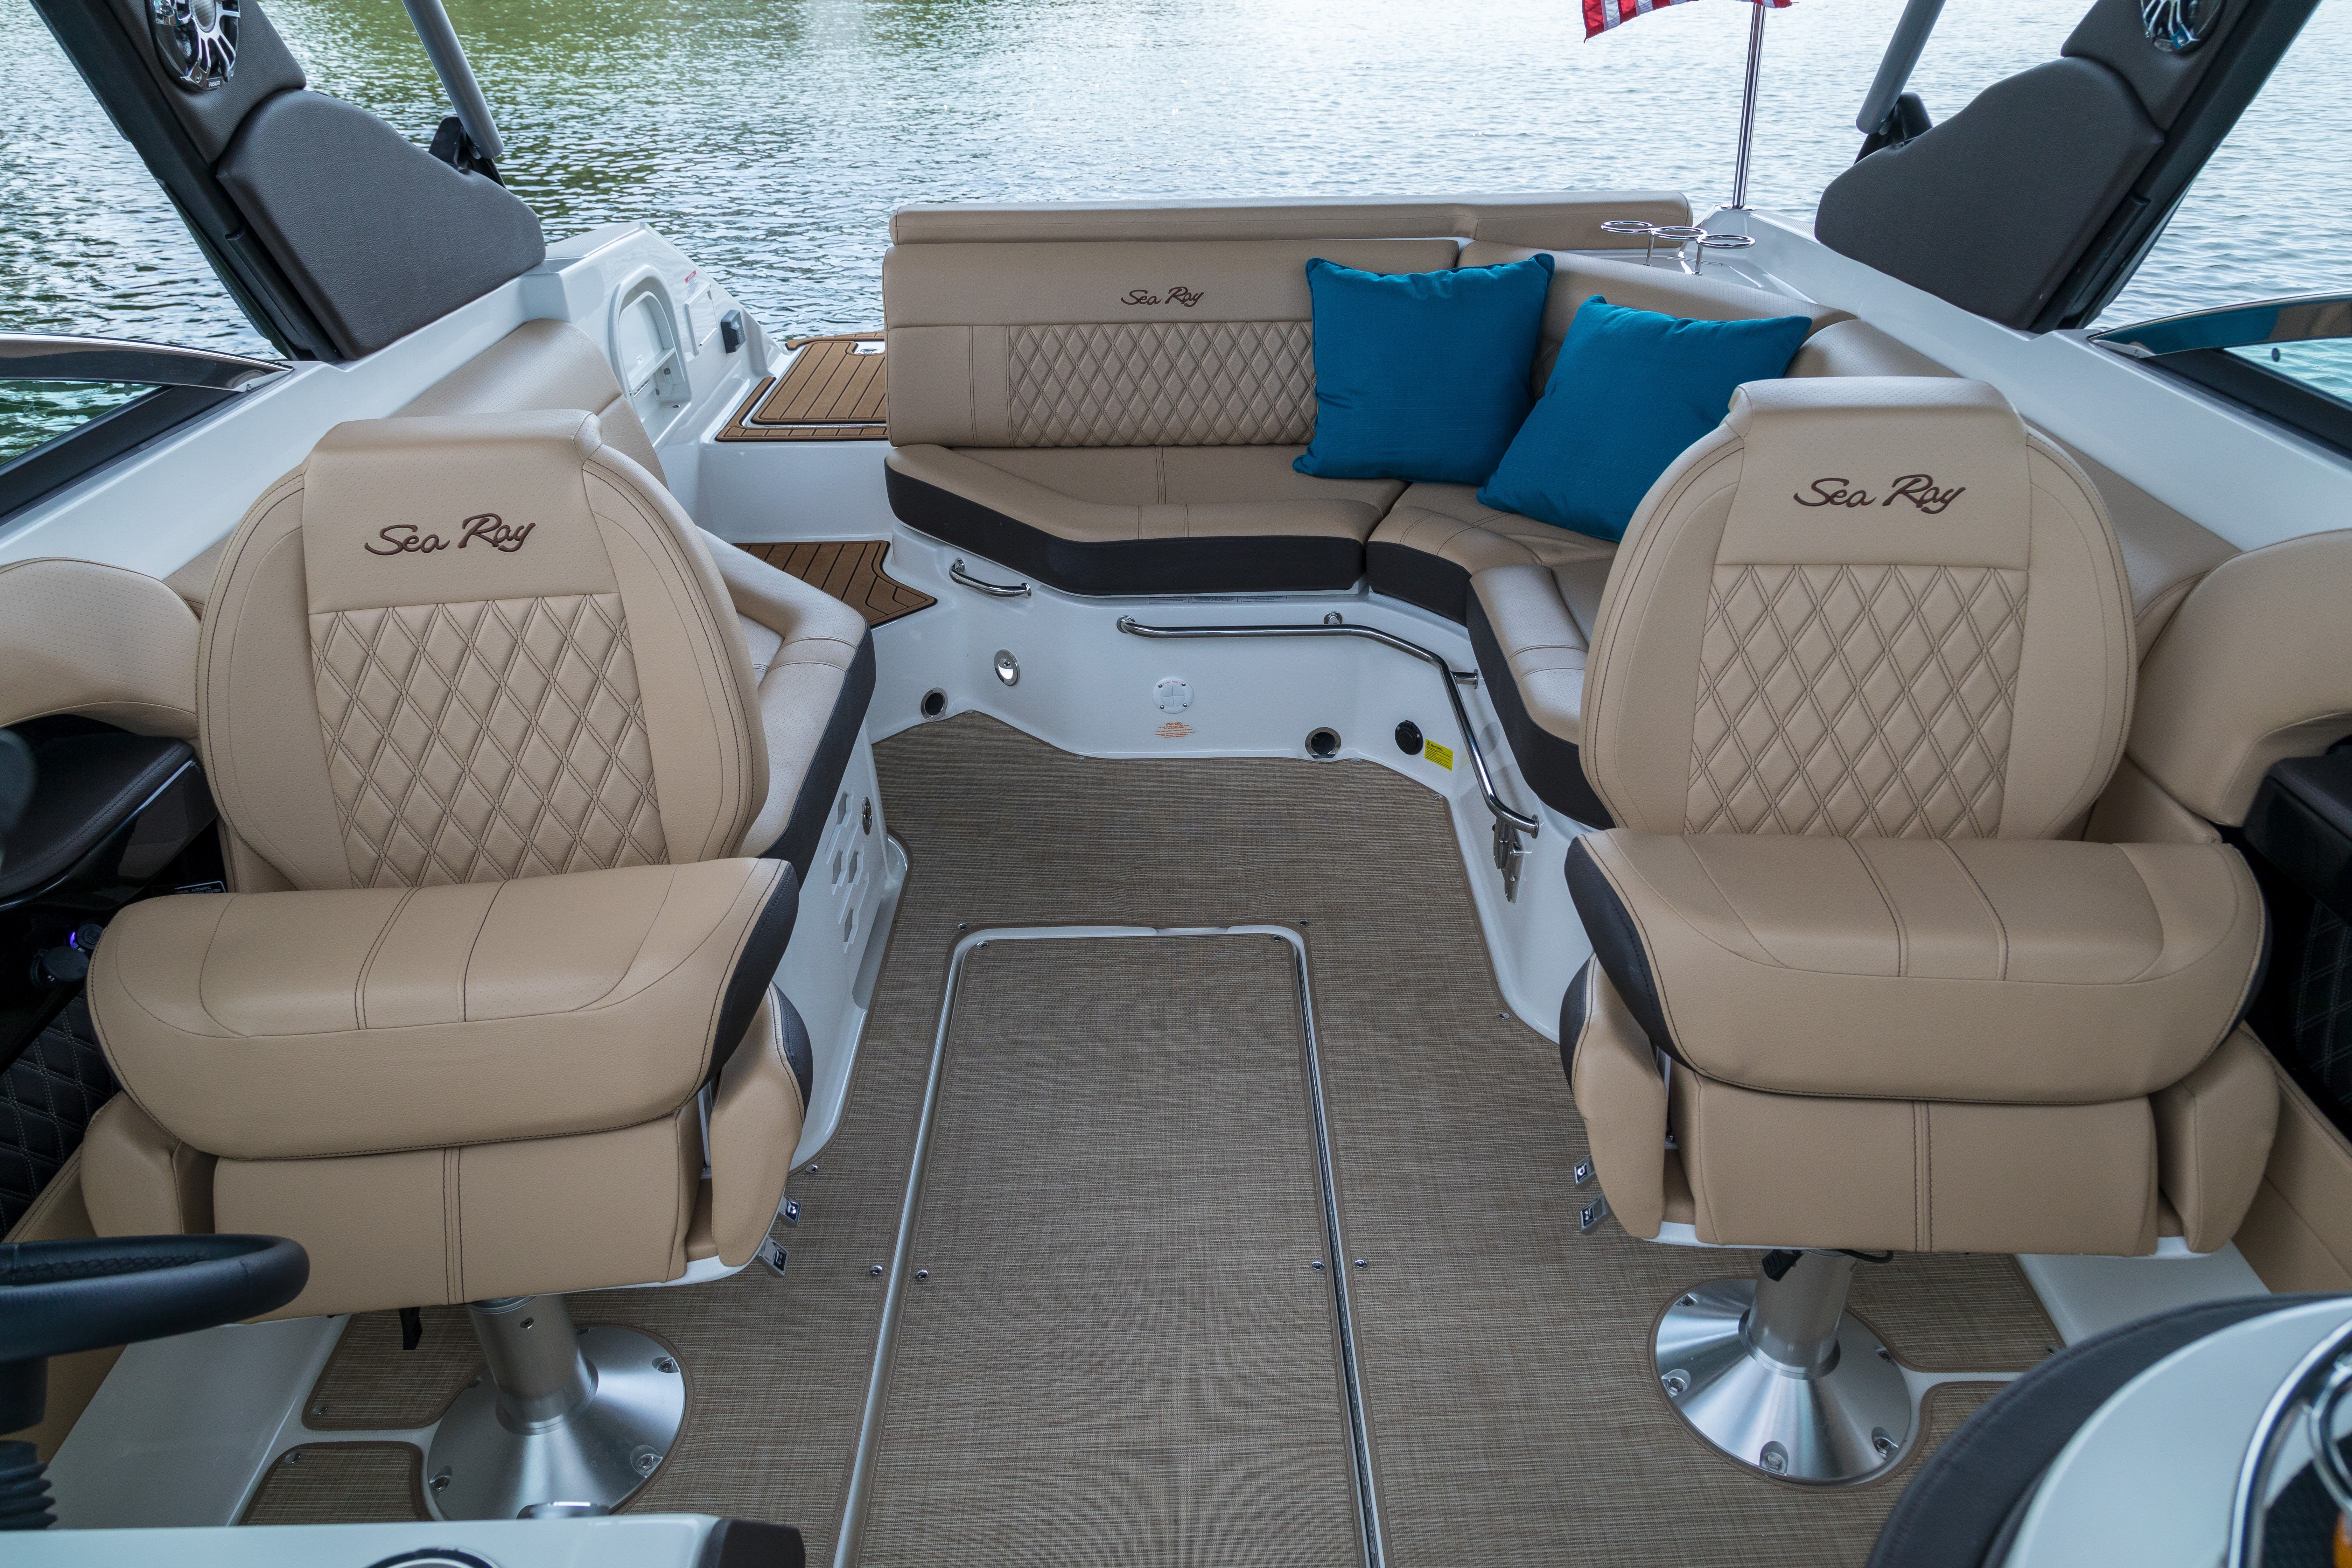 2021 Sea Ray boat for sale, model of the boat is 250slx & Image # 5 of 13